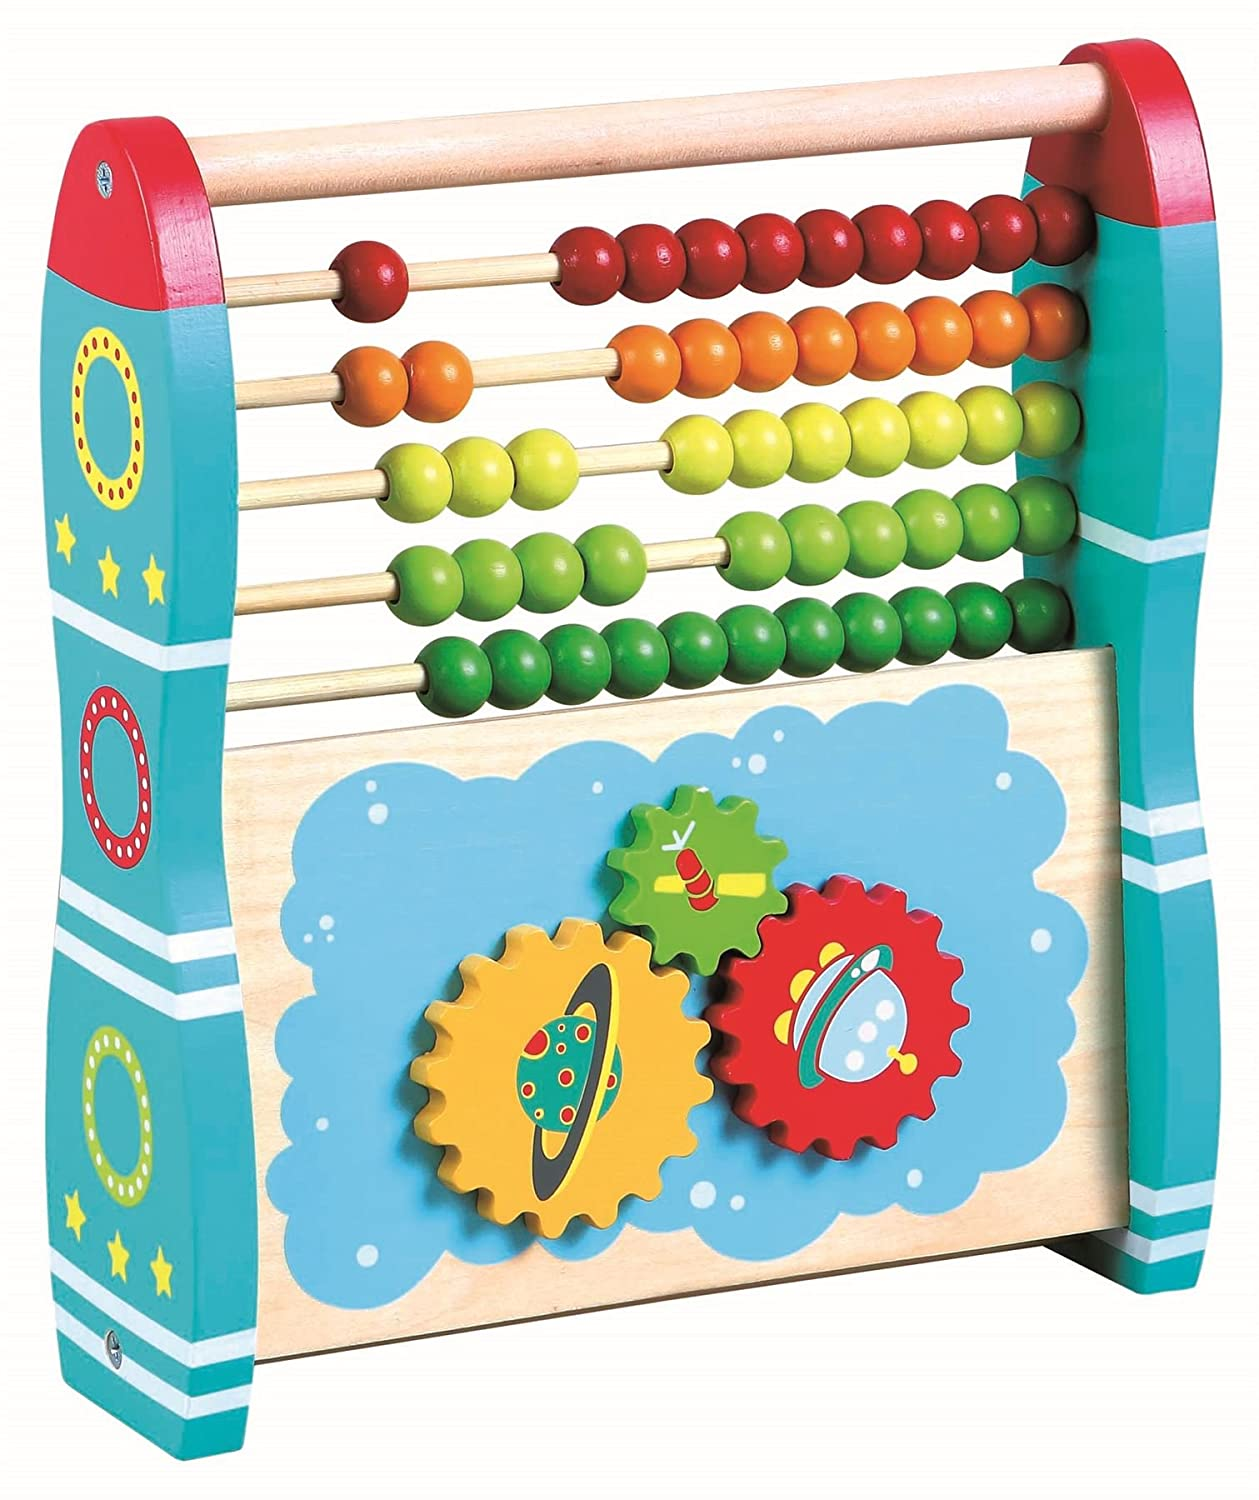 Lelin Wooden 2 in 1 Abacus Rocket Childrens Kids Learning Number Abacus 0003974